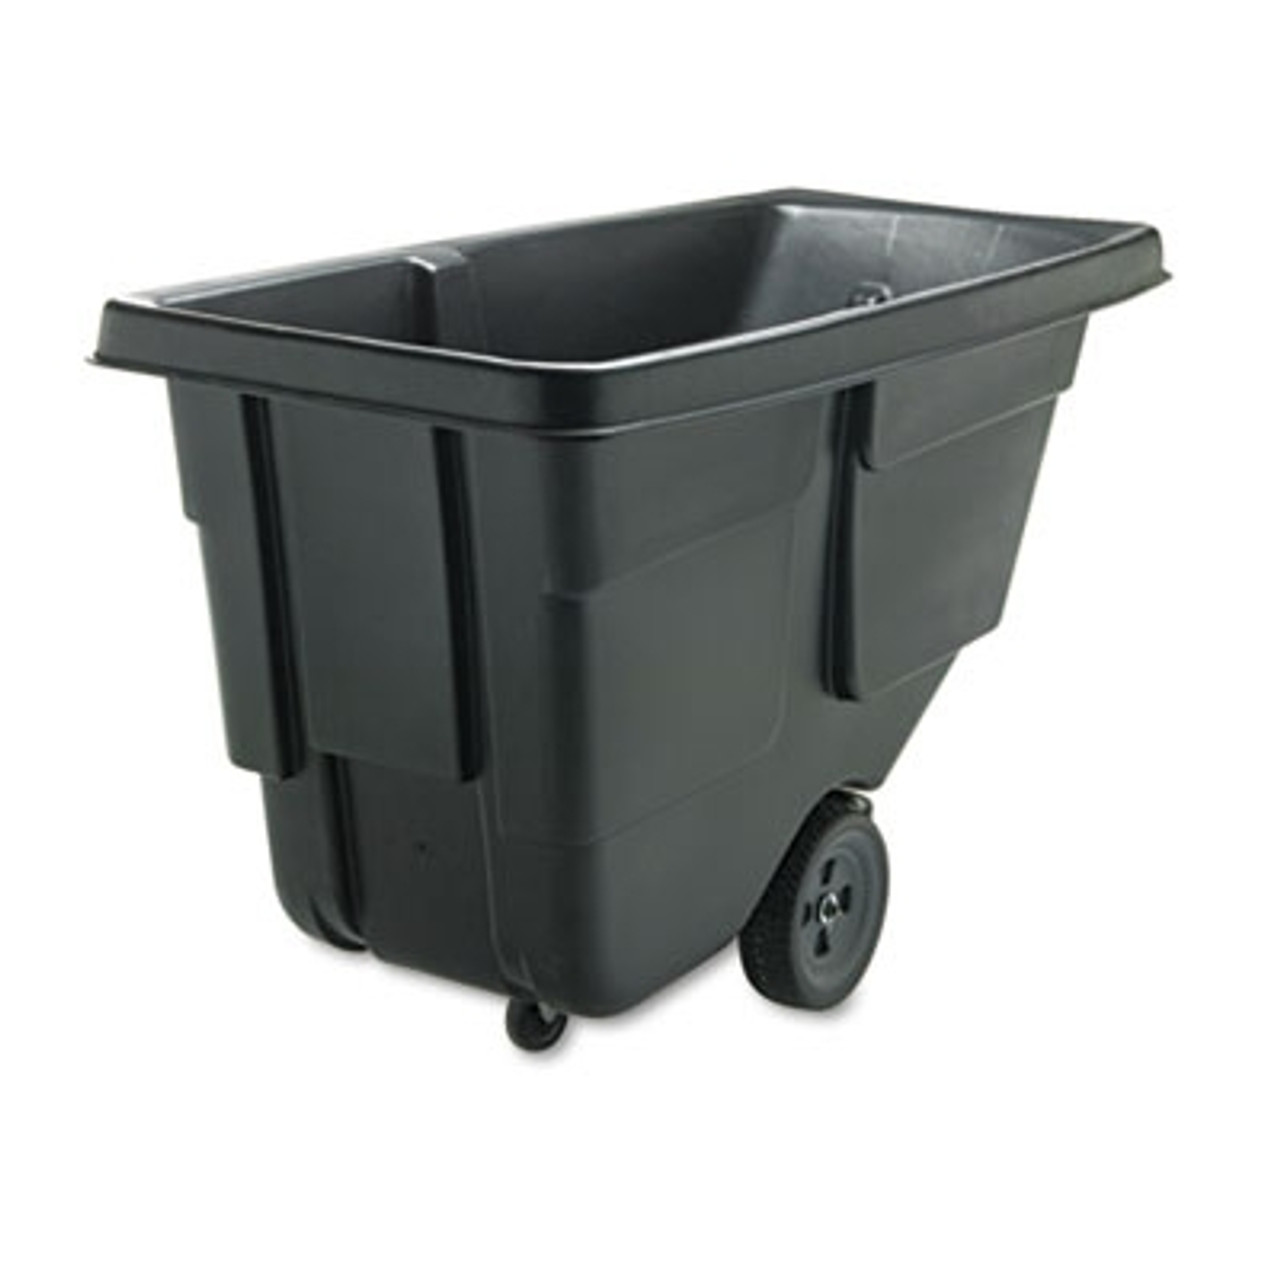 Rubbermaid Commercial Value Line Tilt Truck, Rectangular, Plastic/Steel Frame, 300lb cap, Black